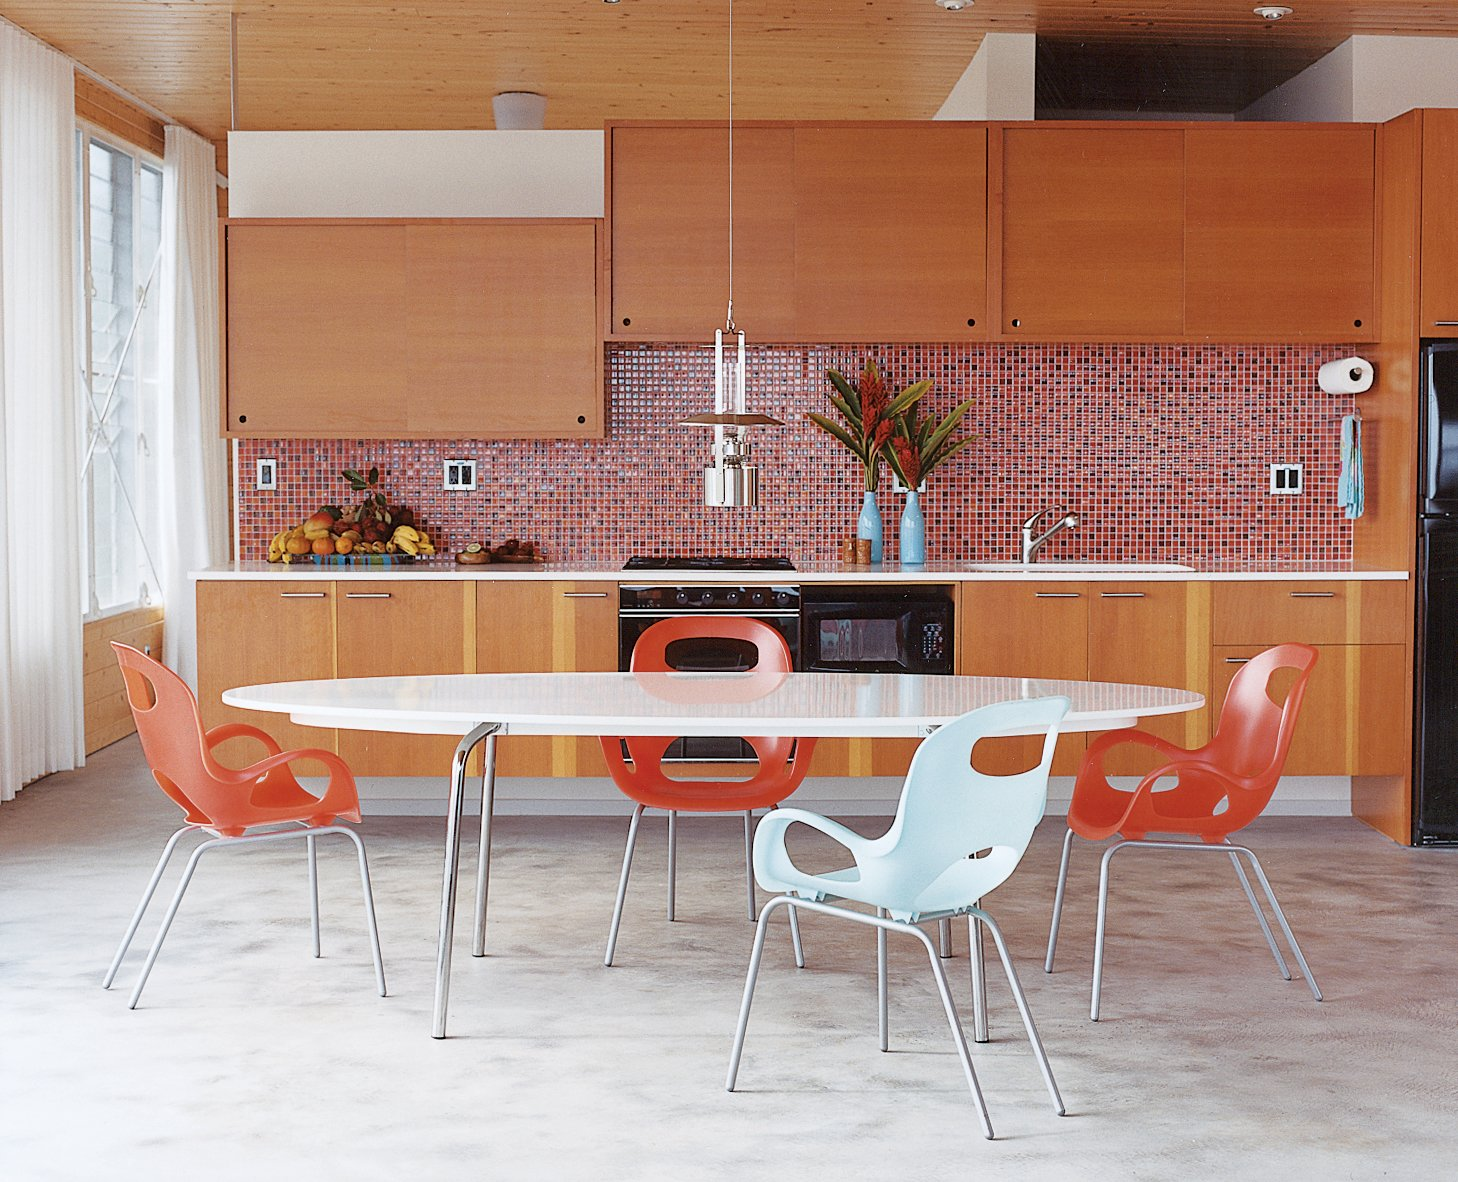 Kitchen, Mosaic Tile Backsplashe, and Wood Cabinet The concrete floor takes on a silky appearance in the kitchen and dining areas. The Gideå table is from IKEA, the Karim Rashid Oh chairs are from Umbra, and the Erik Magnussen kerosene Ship's lamp is by Stelton.  Photo 9 of 11 in Go With the Flow